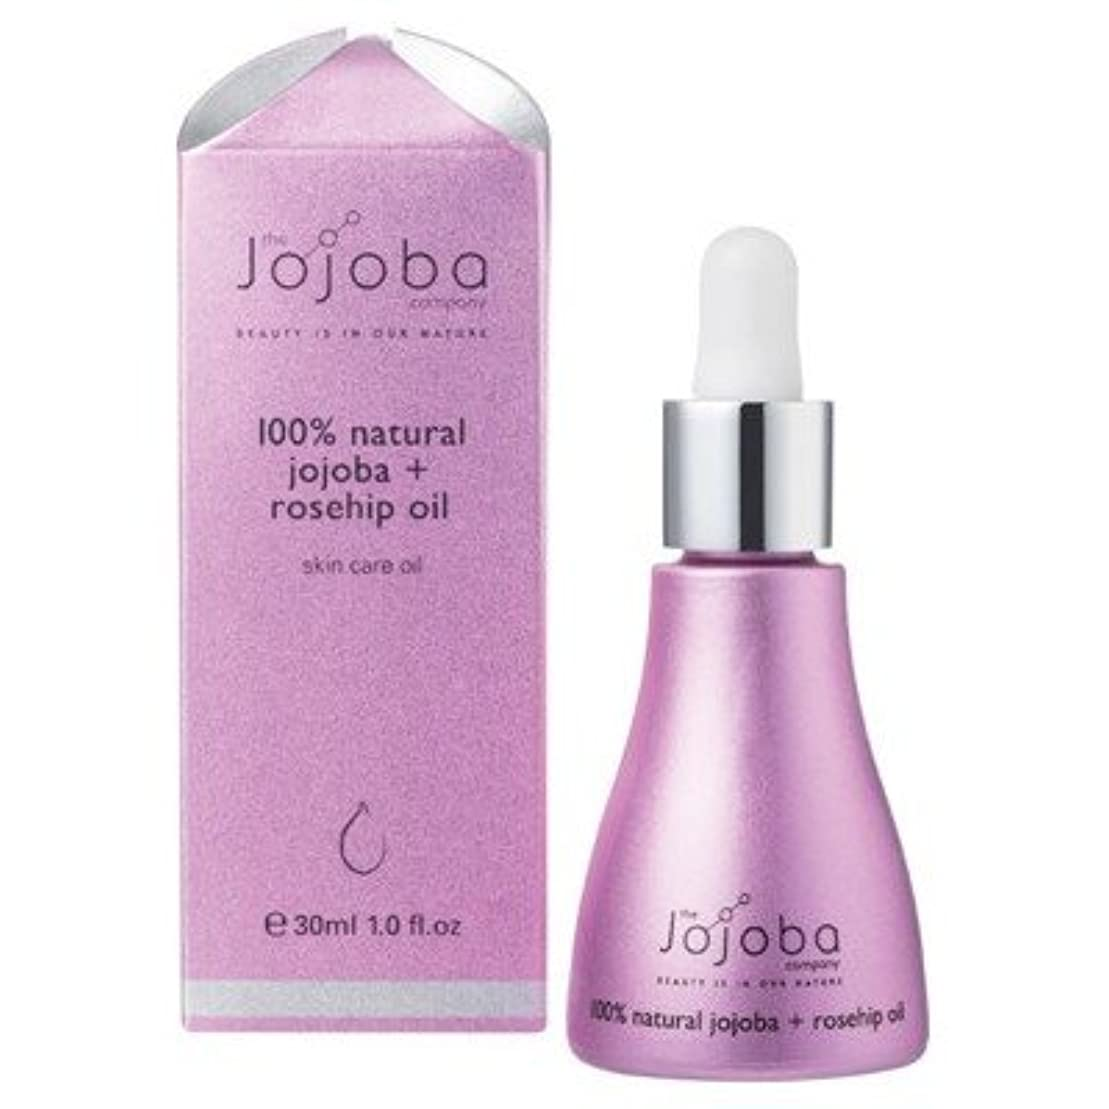 退院哺乳類容器the Jojoba Company 100% Natural Australian Jojoba Oil + Rosehip Oil ホホバ&ローズヒップブレンドオイル 30ml [海外直送品]